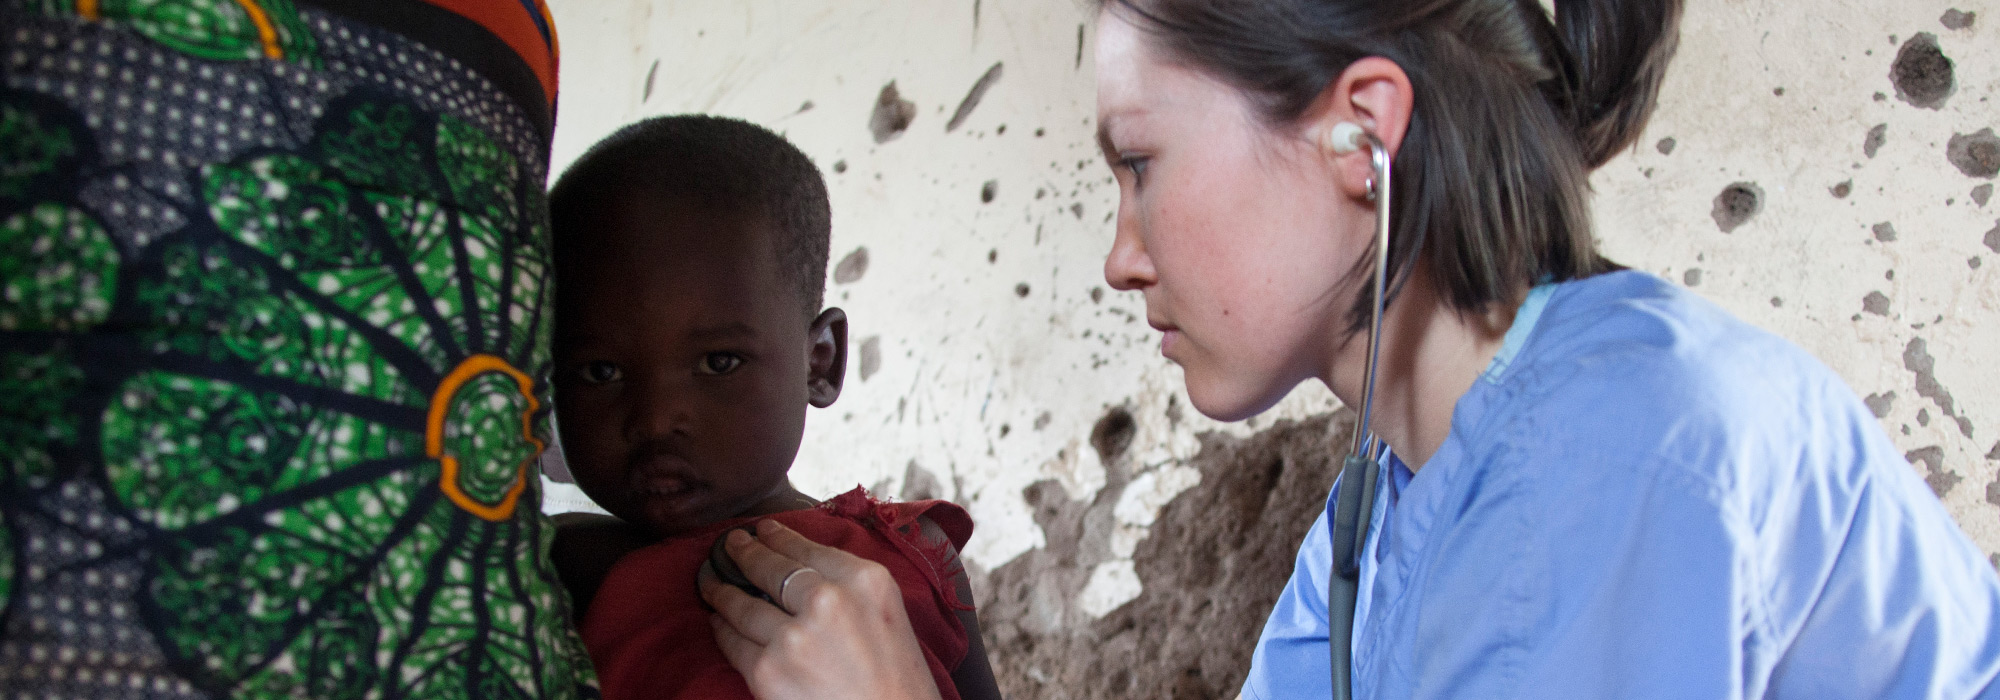 UC Med student Katie Brown examines a child in Tanzania